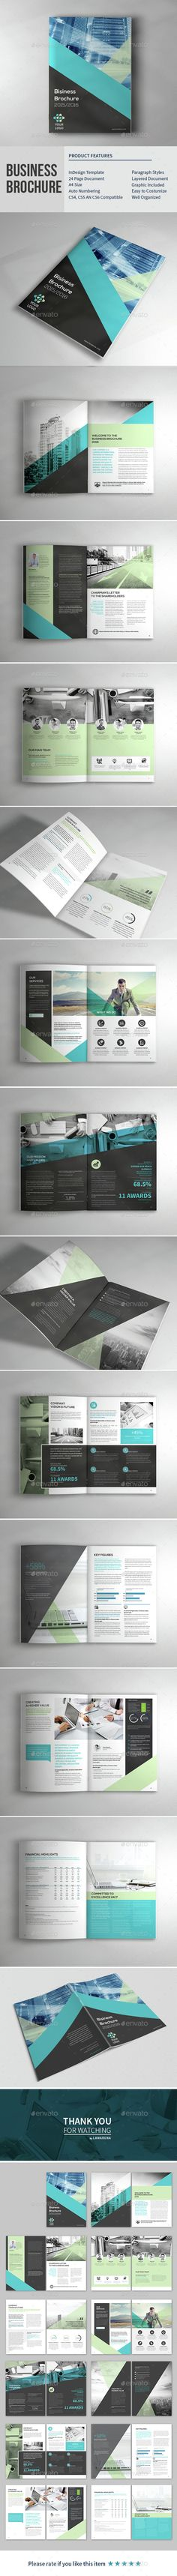 Business Corporate Brochure Template InDesign INDD. Download here: http://graphicriver.net/item/business-corporate-brochure/15241933?ref=ksioks